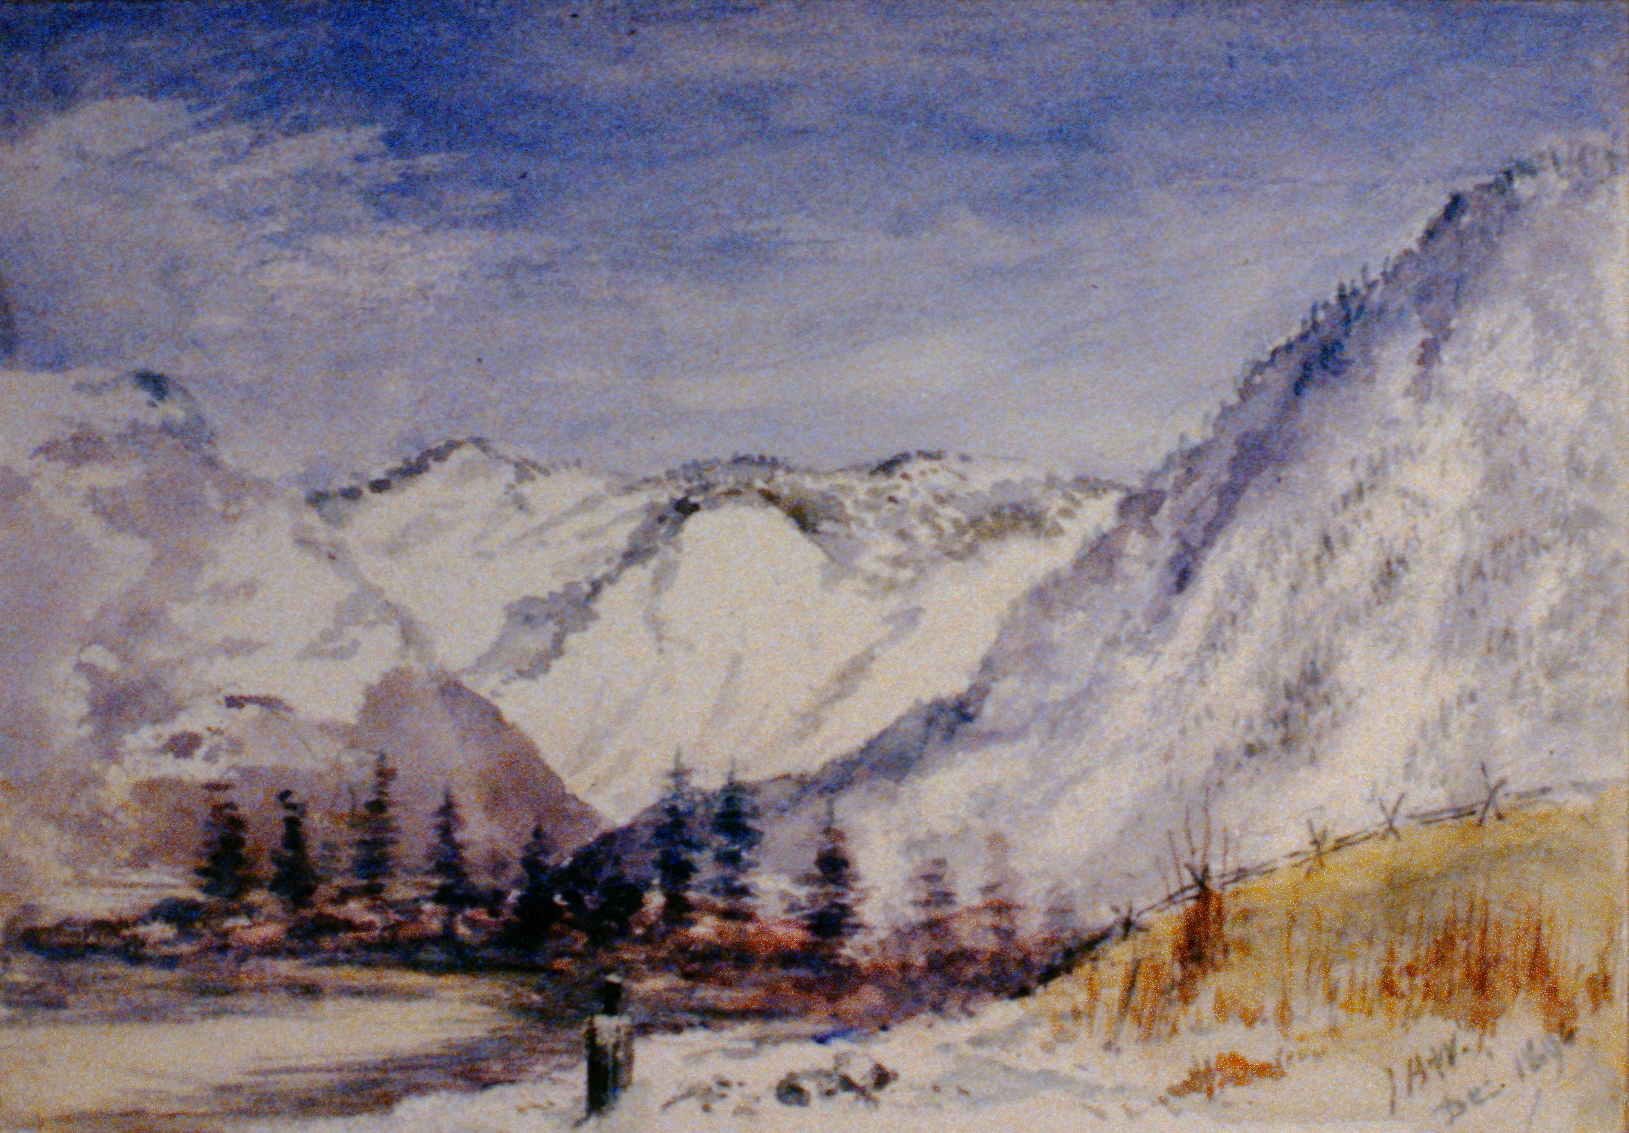 Three Mountains , 1894, Julia Bullock Webster, watercolour on paper, 17.5 x 25.1 cm, 1983.02.01. Gift of Mrs. Barbara Steel.